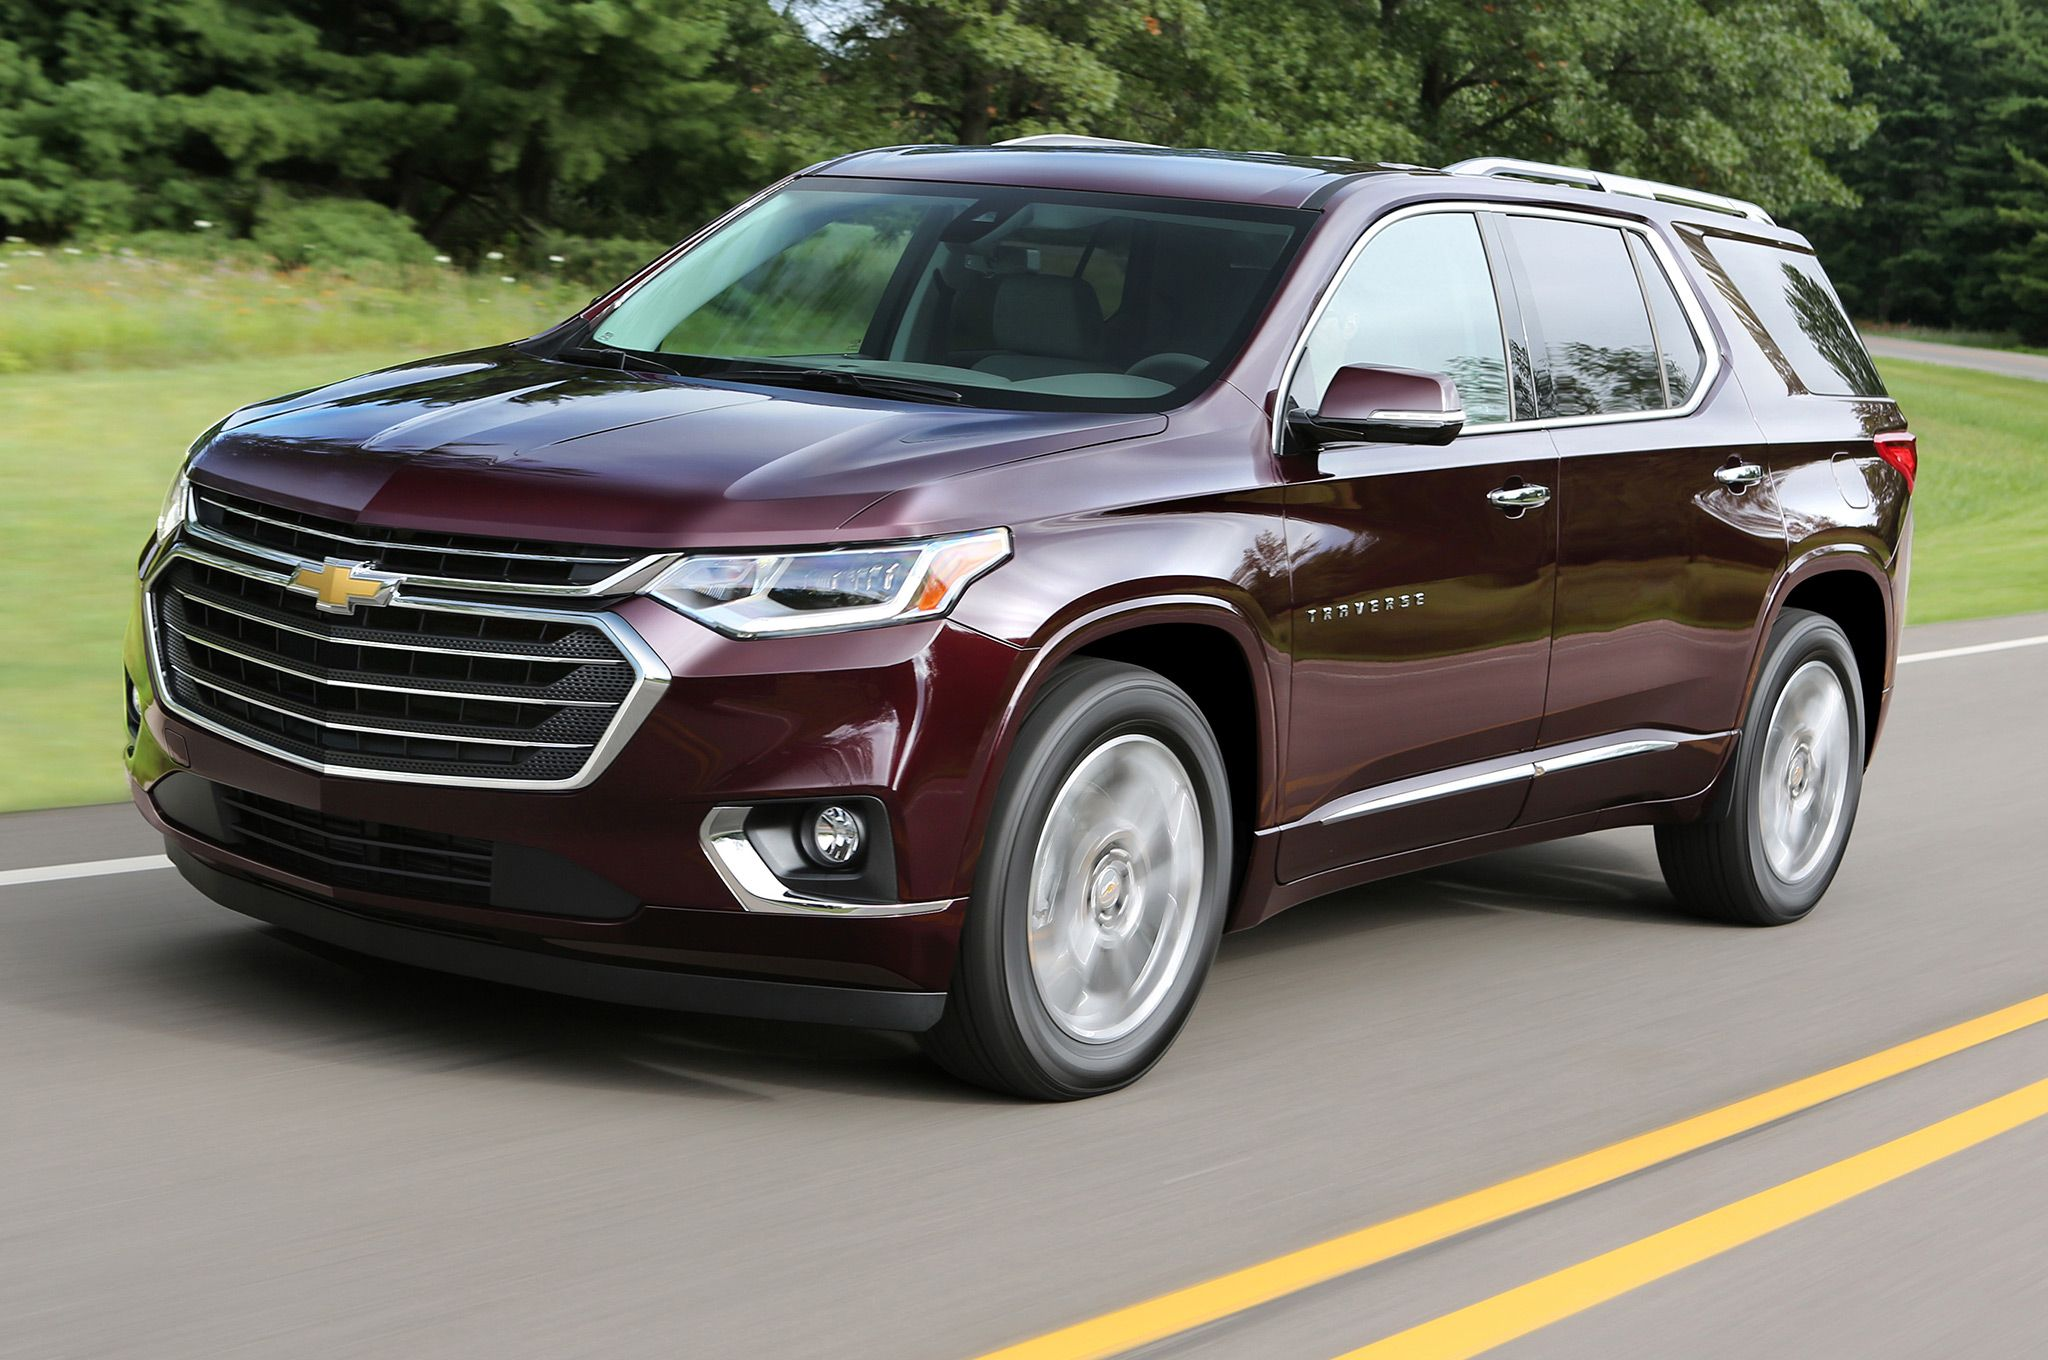 2018 Chevrolet Traverse First Drive Review Staycation Chevrolet Traverse Chevrolet Crossover Suv